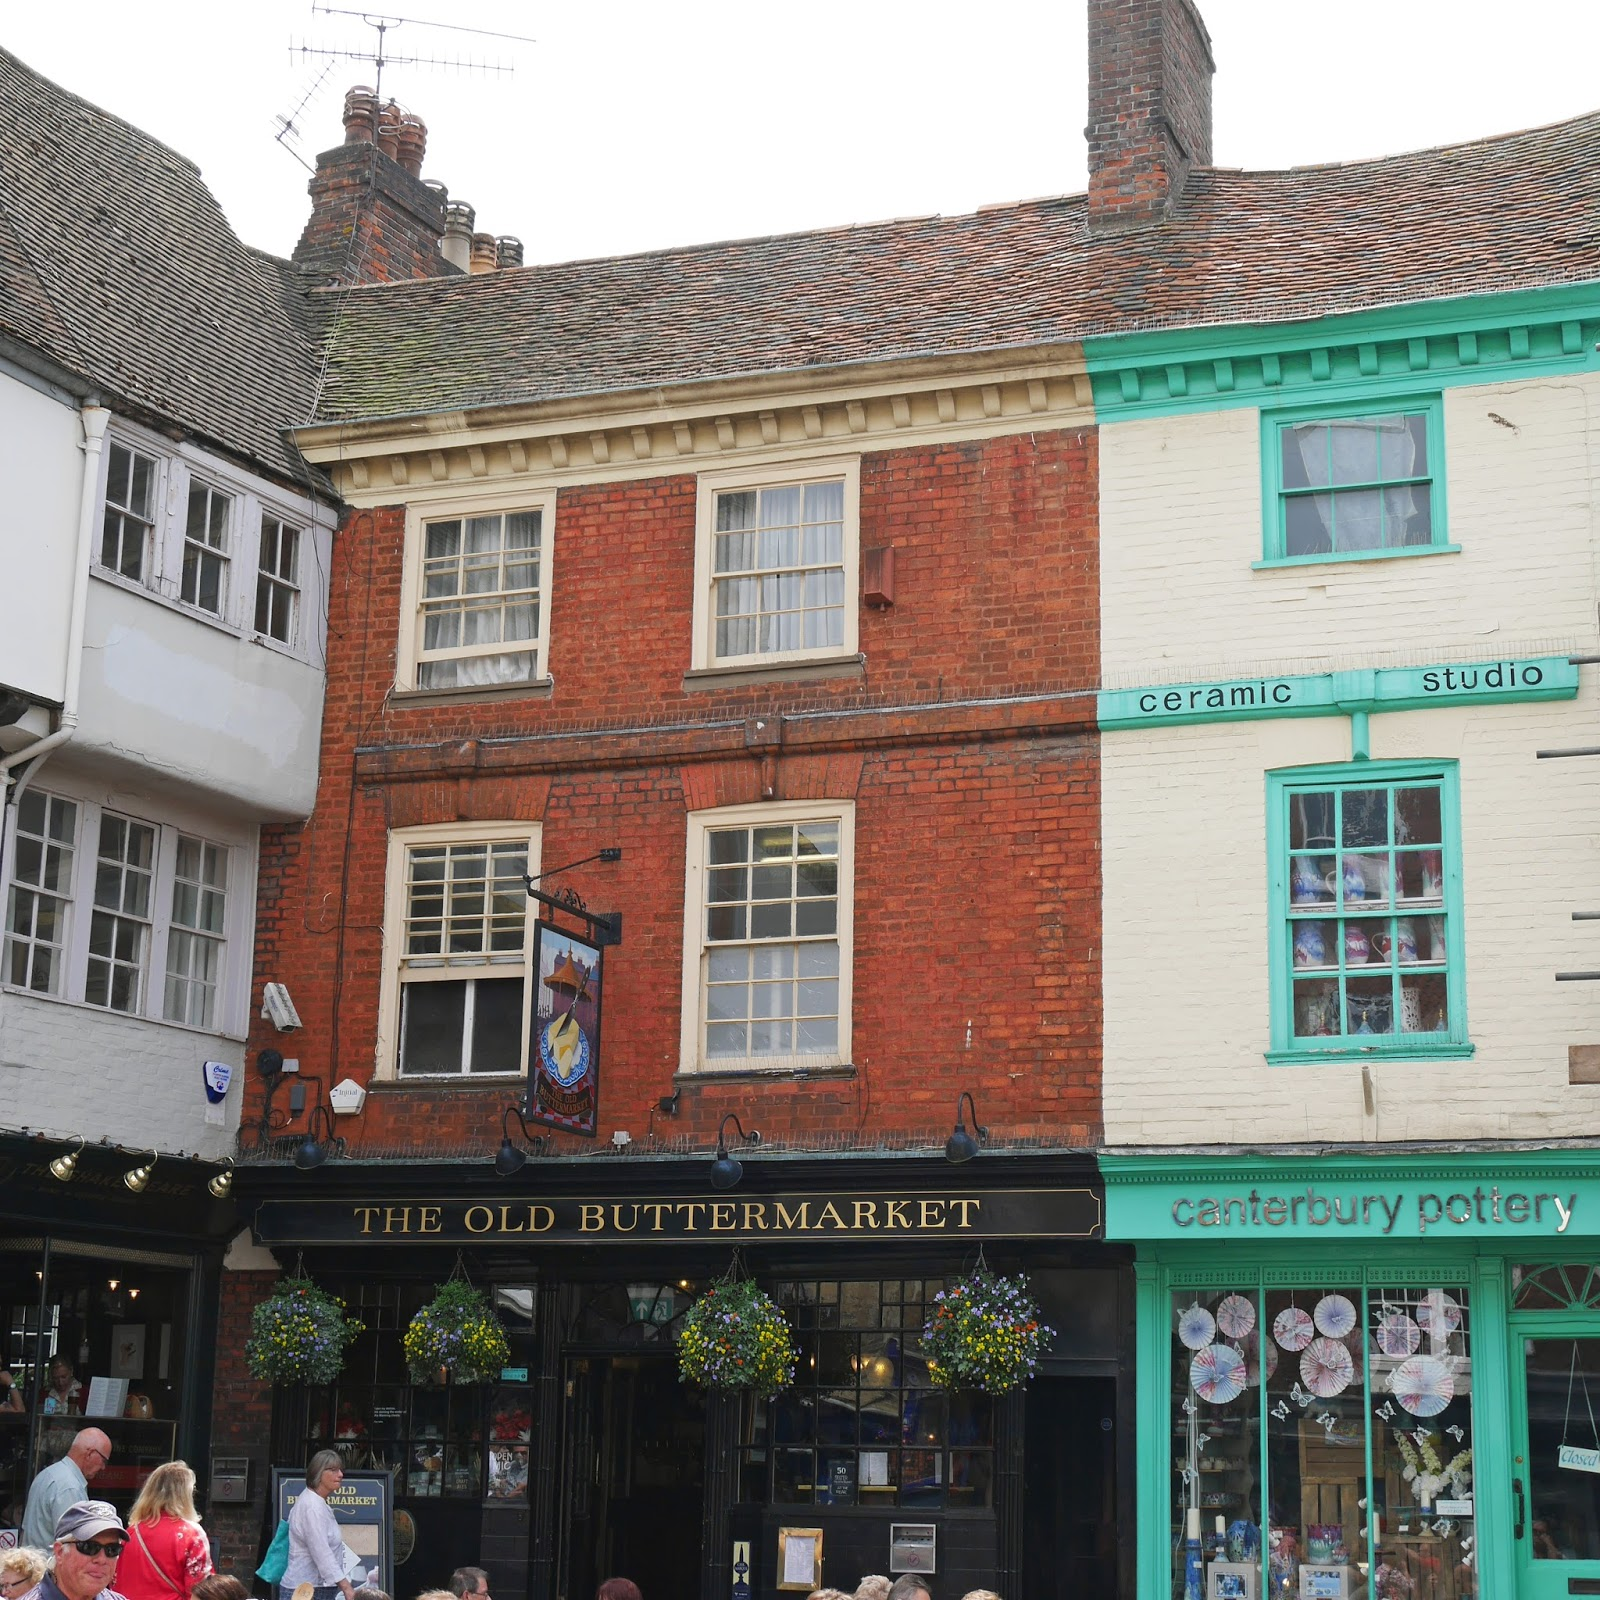 The Old Buttermarket on Burgate in Canterbury, Kent